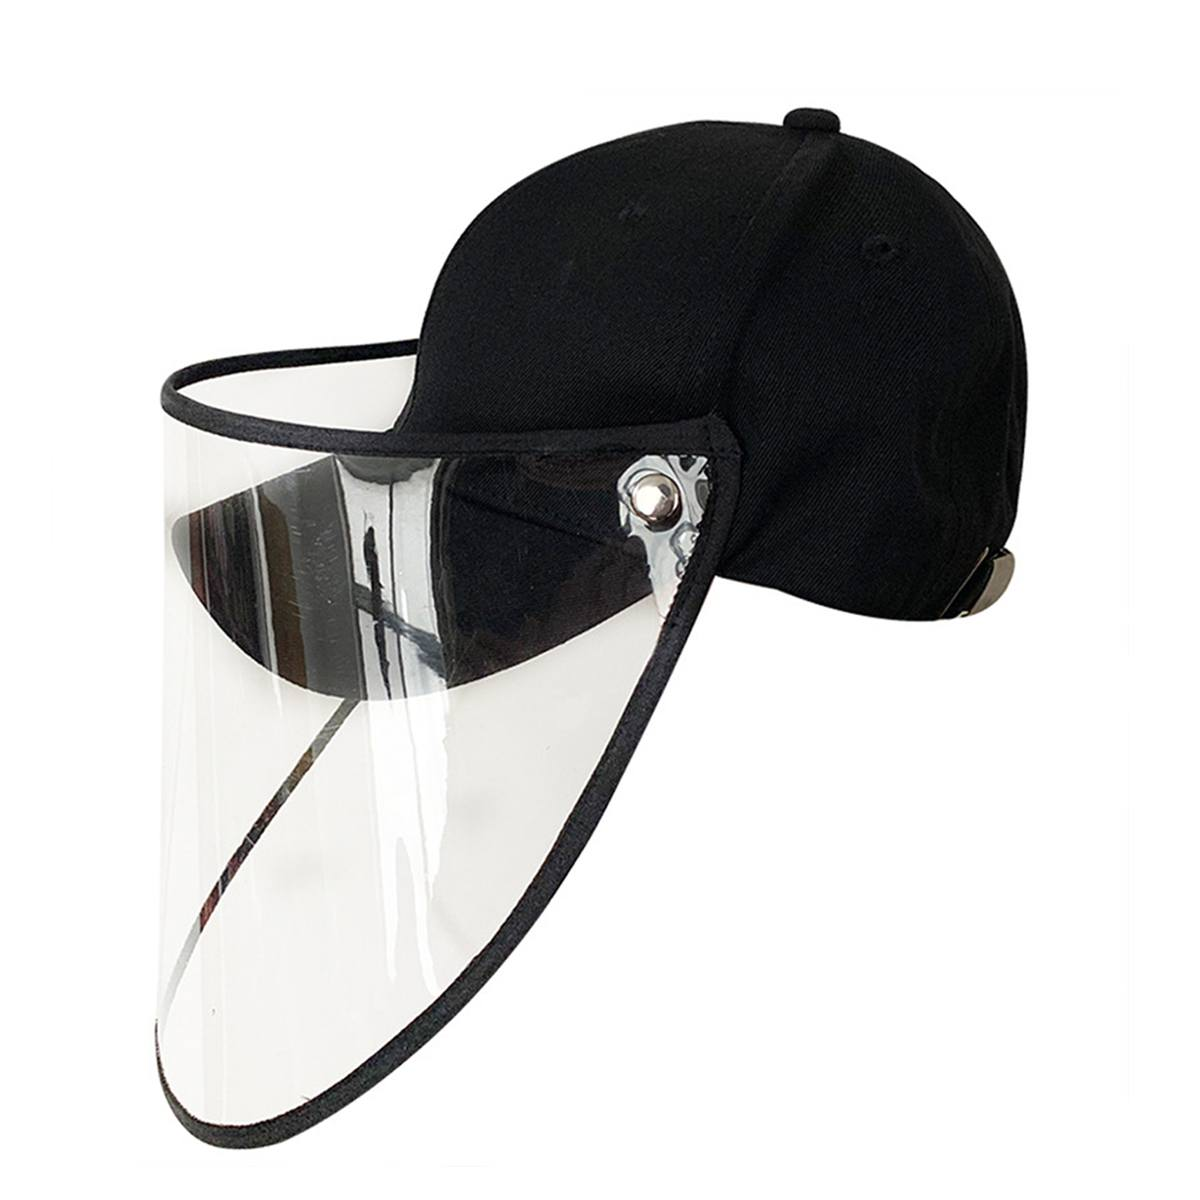 NEW Safety Anti Virus Dust Mask Cover With Hat Anti Flue Spittle Anti Dust Cover Full Face Eyes Protection Mask